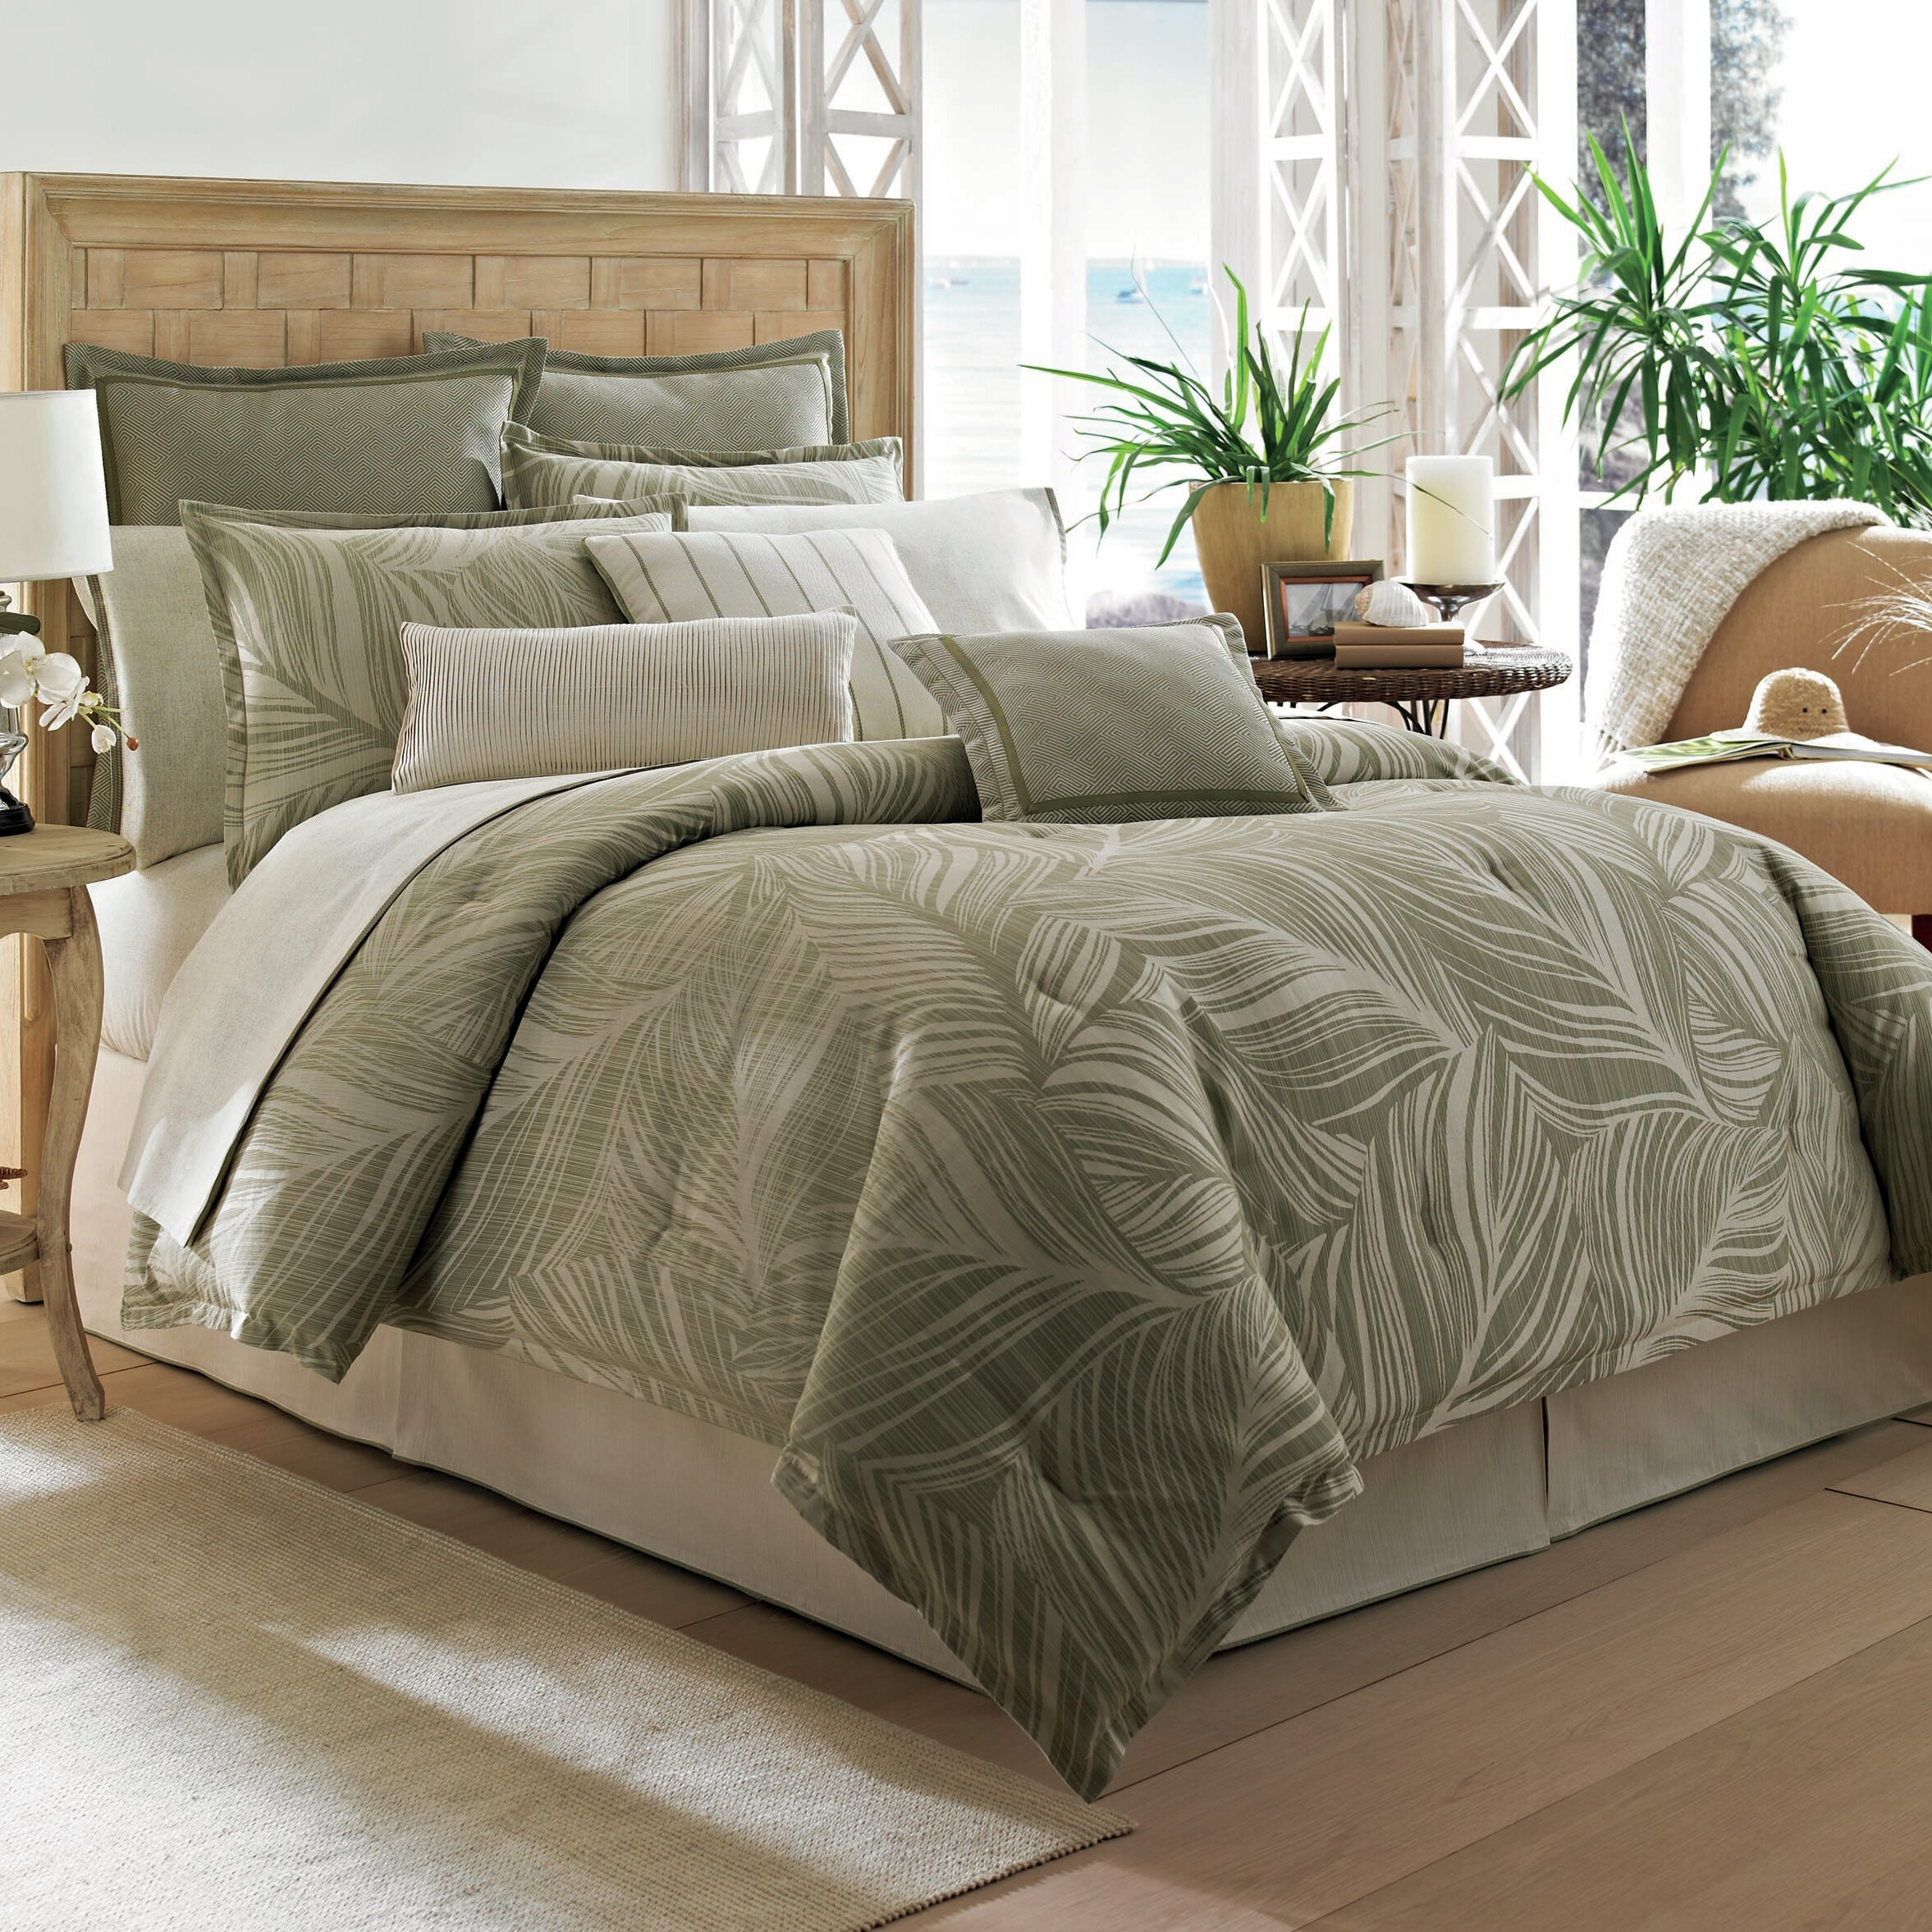 Tommy bahama bedding montauk drifter comforter collection Tommy bahama bedding